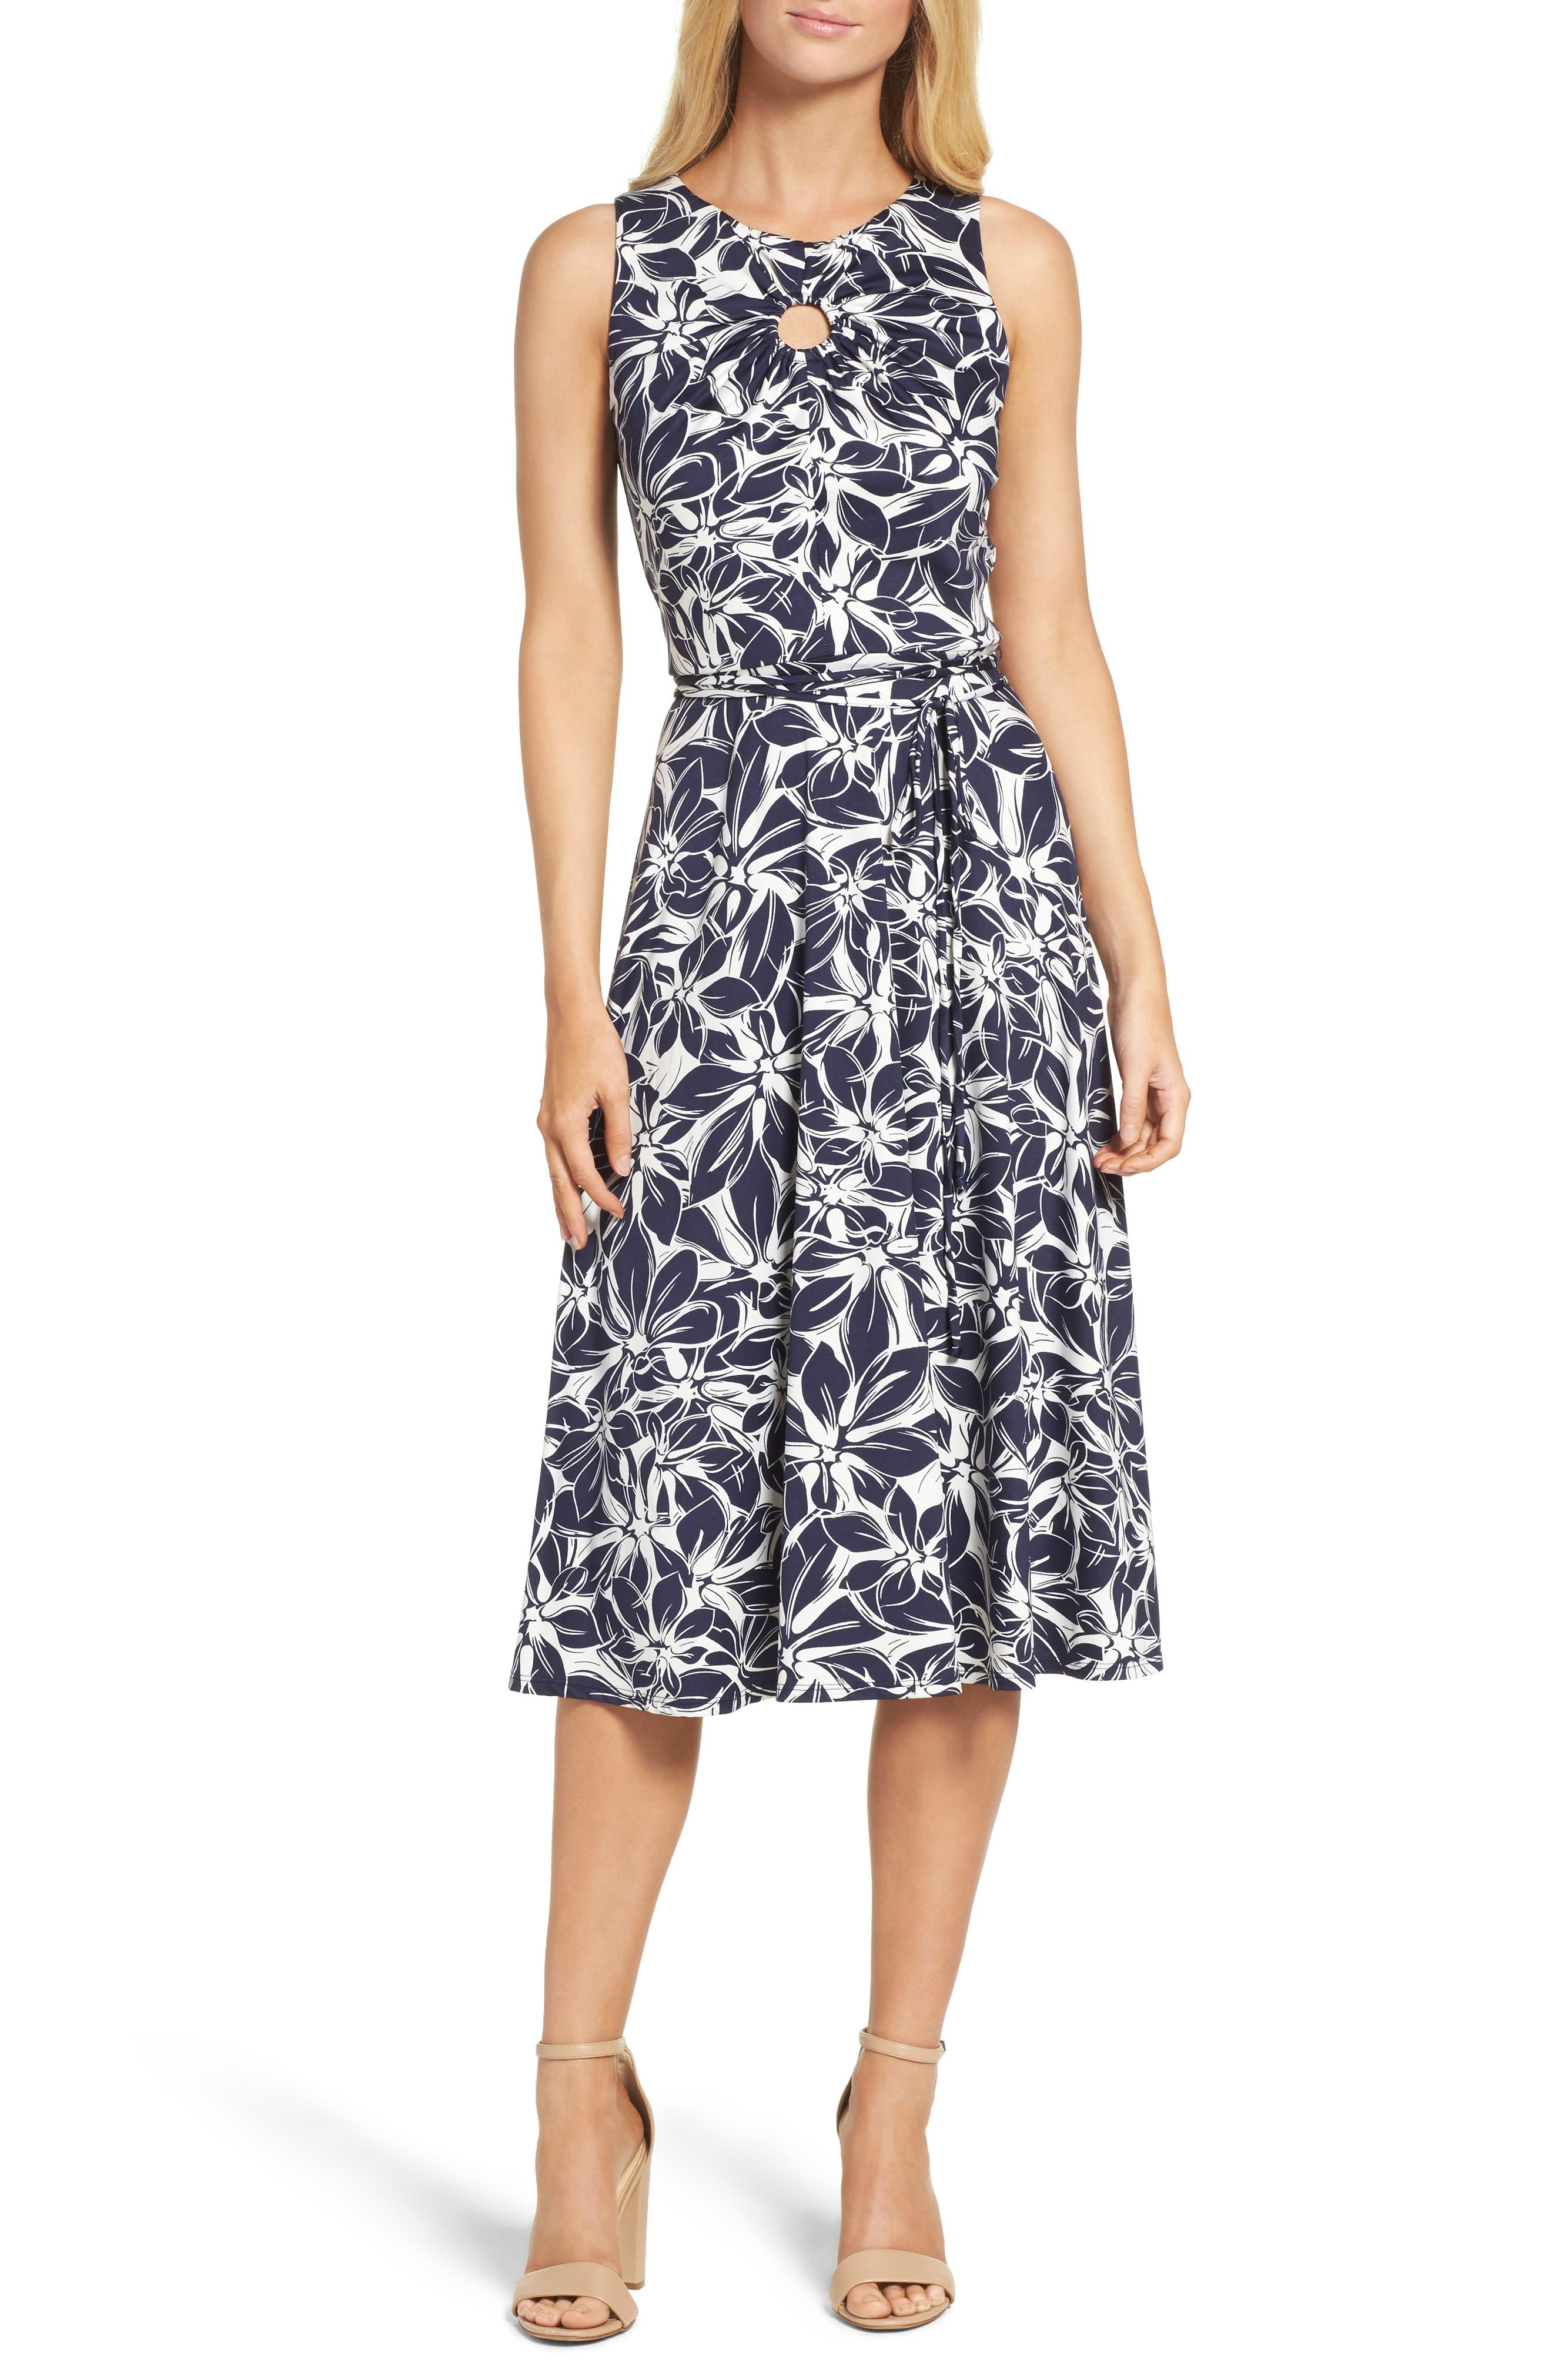 Gabby Skye Belted Floral Midi Dress